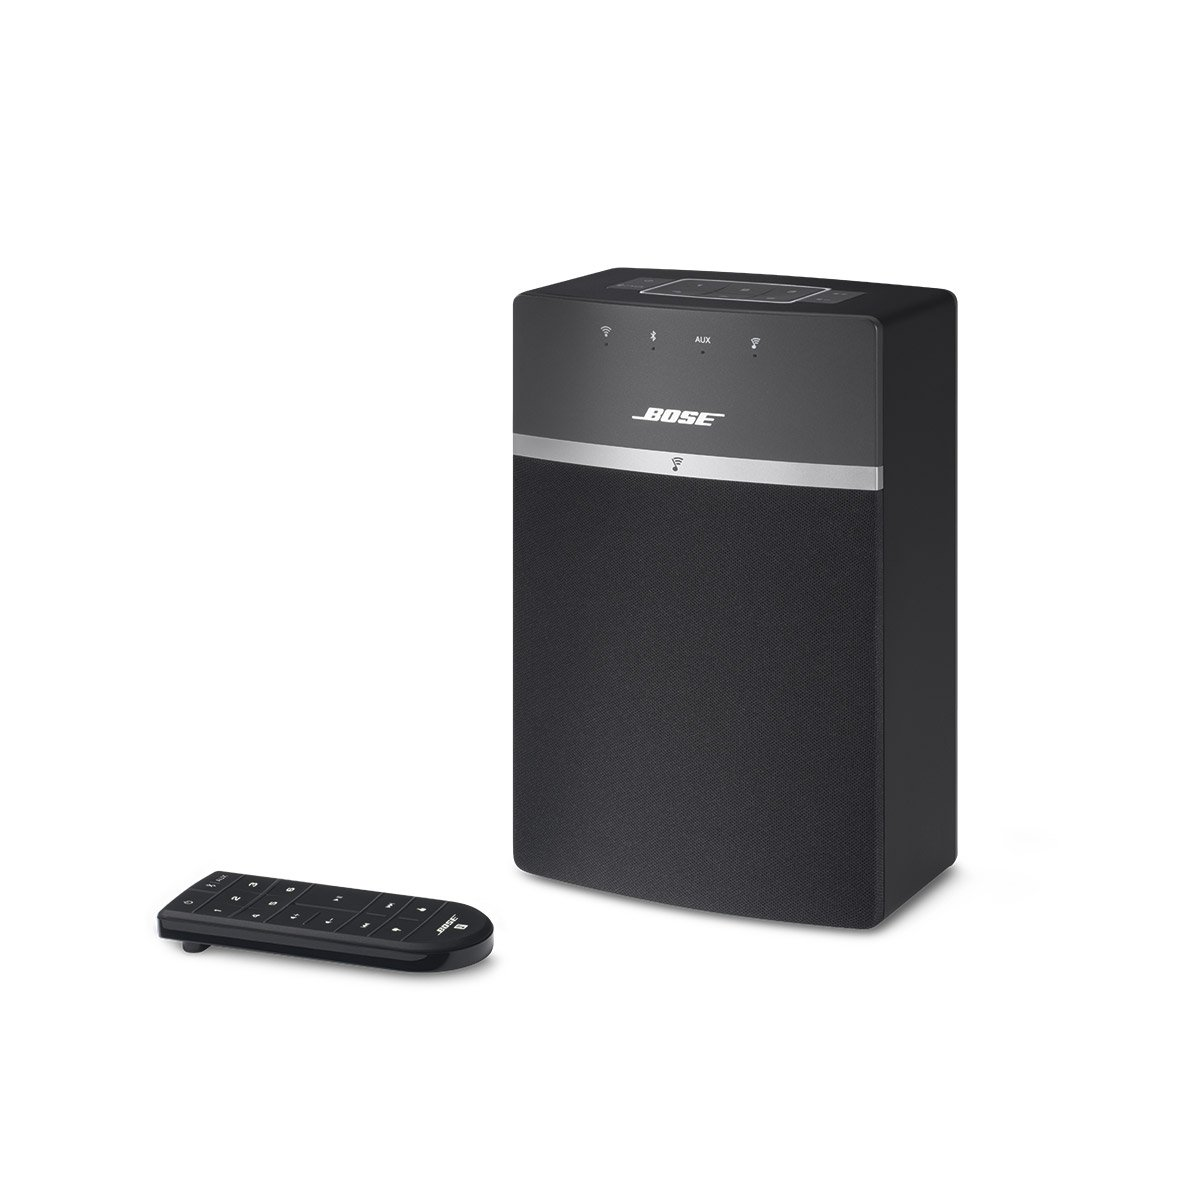 bose 416776. bose soundtouch 10 wireless (bluetooth/wi-fi) speaker system - black: amazon.co.uk: hi-fi \u0026 speakers 416776